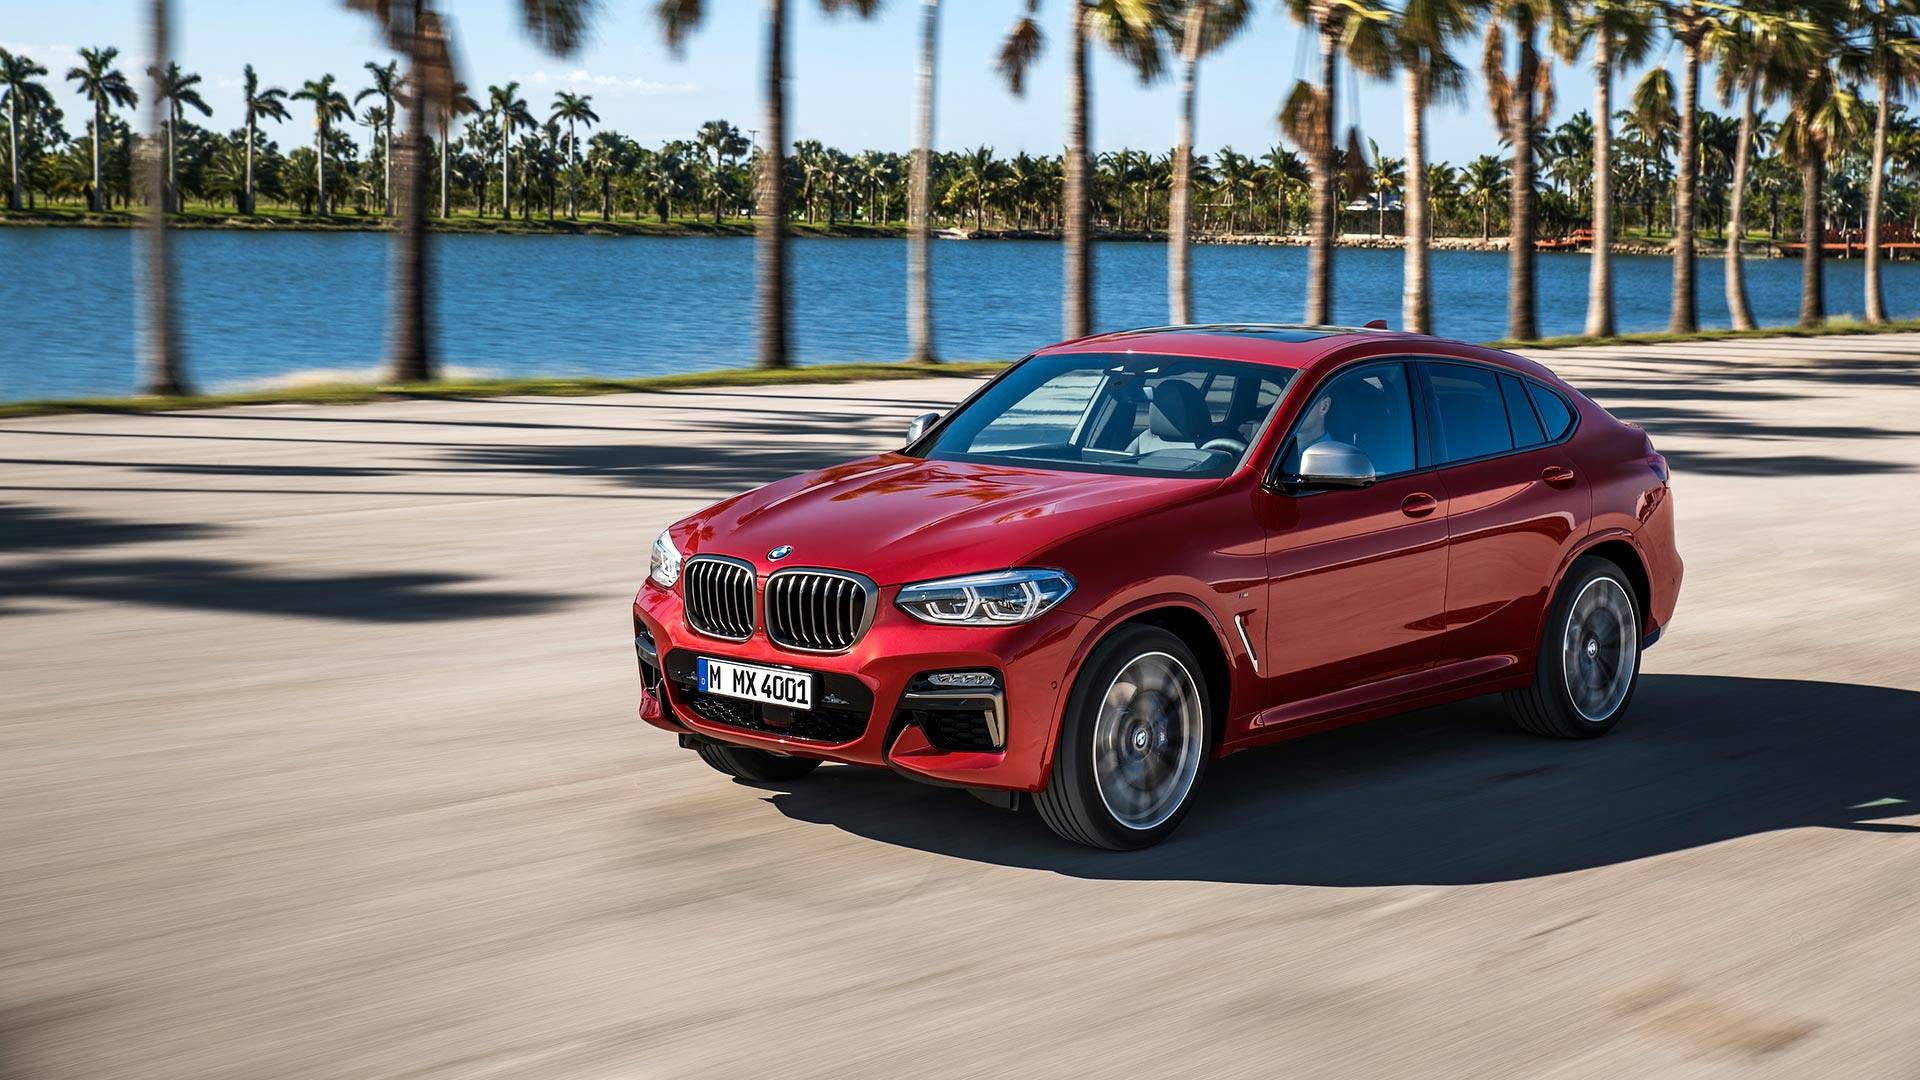 2019 BMW X4 Grows Up And Adds Tech For Latest Generation